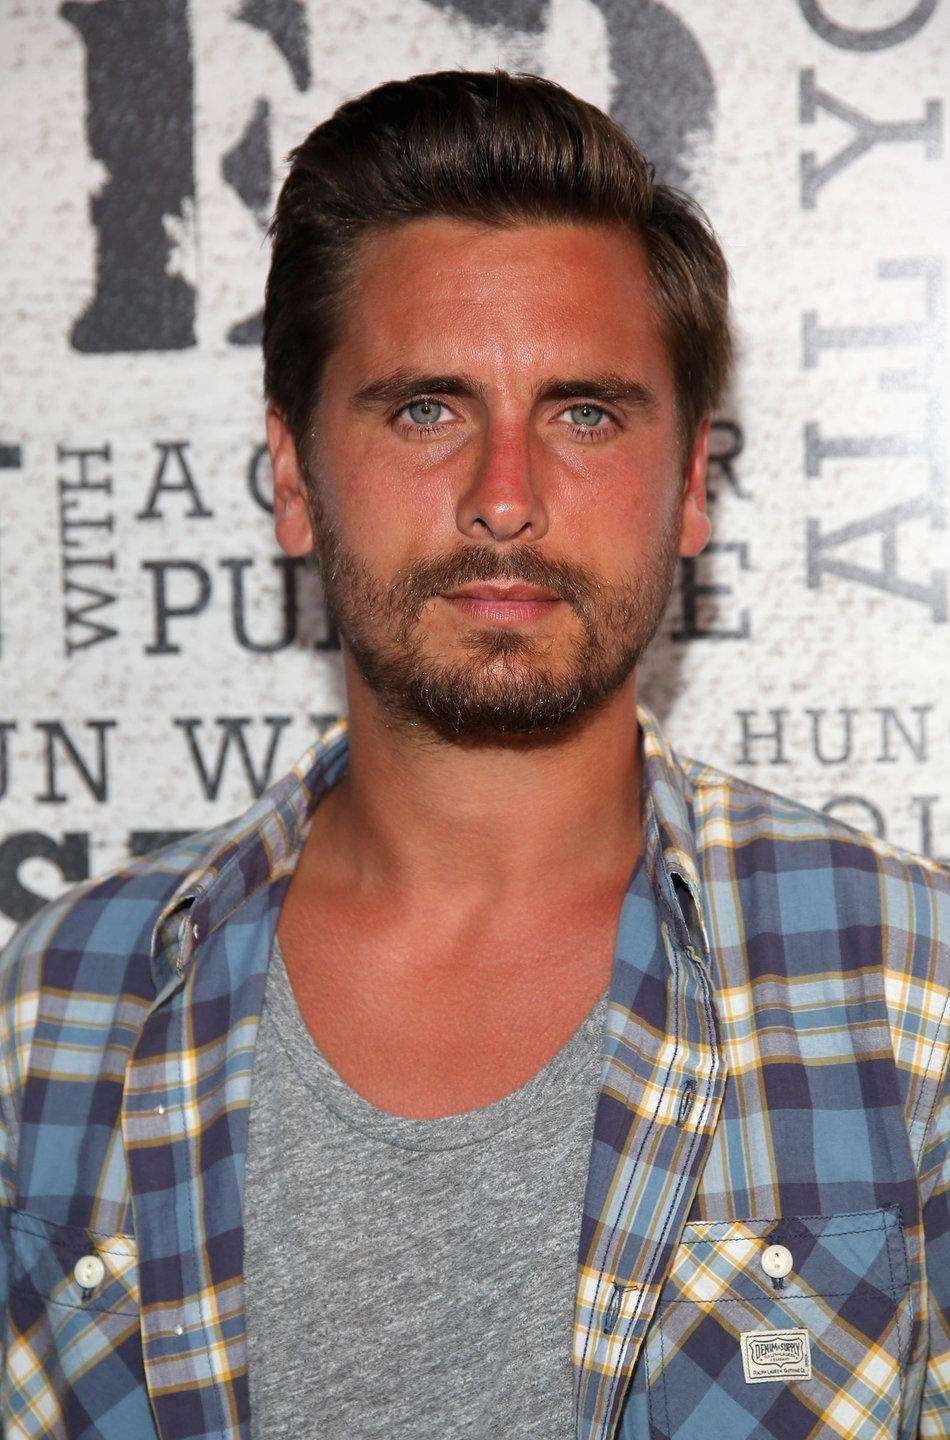 While reality TV star Scott Disick was in